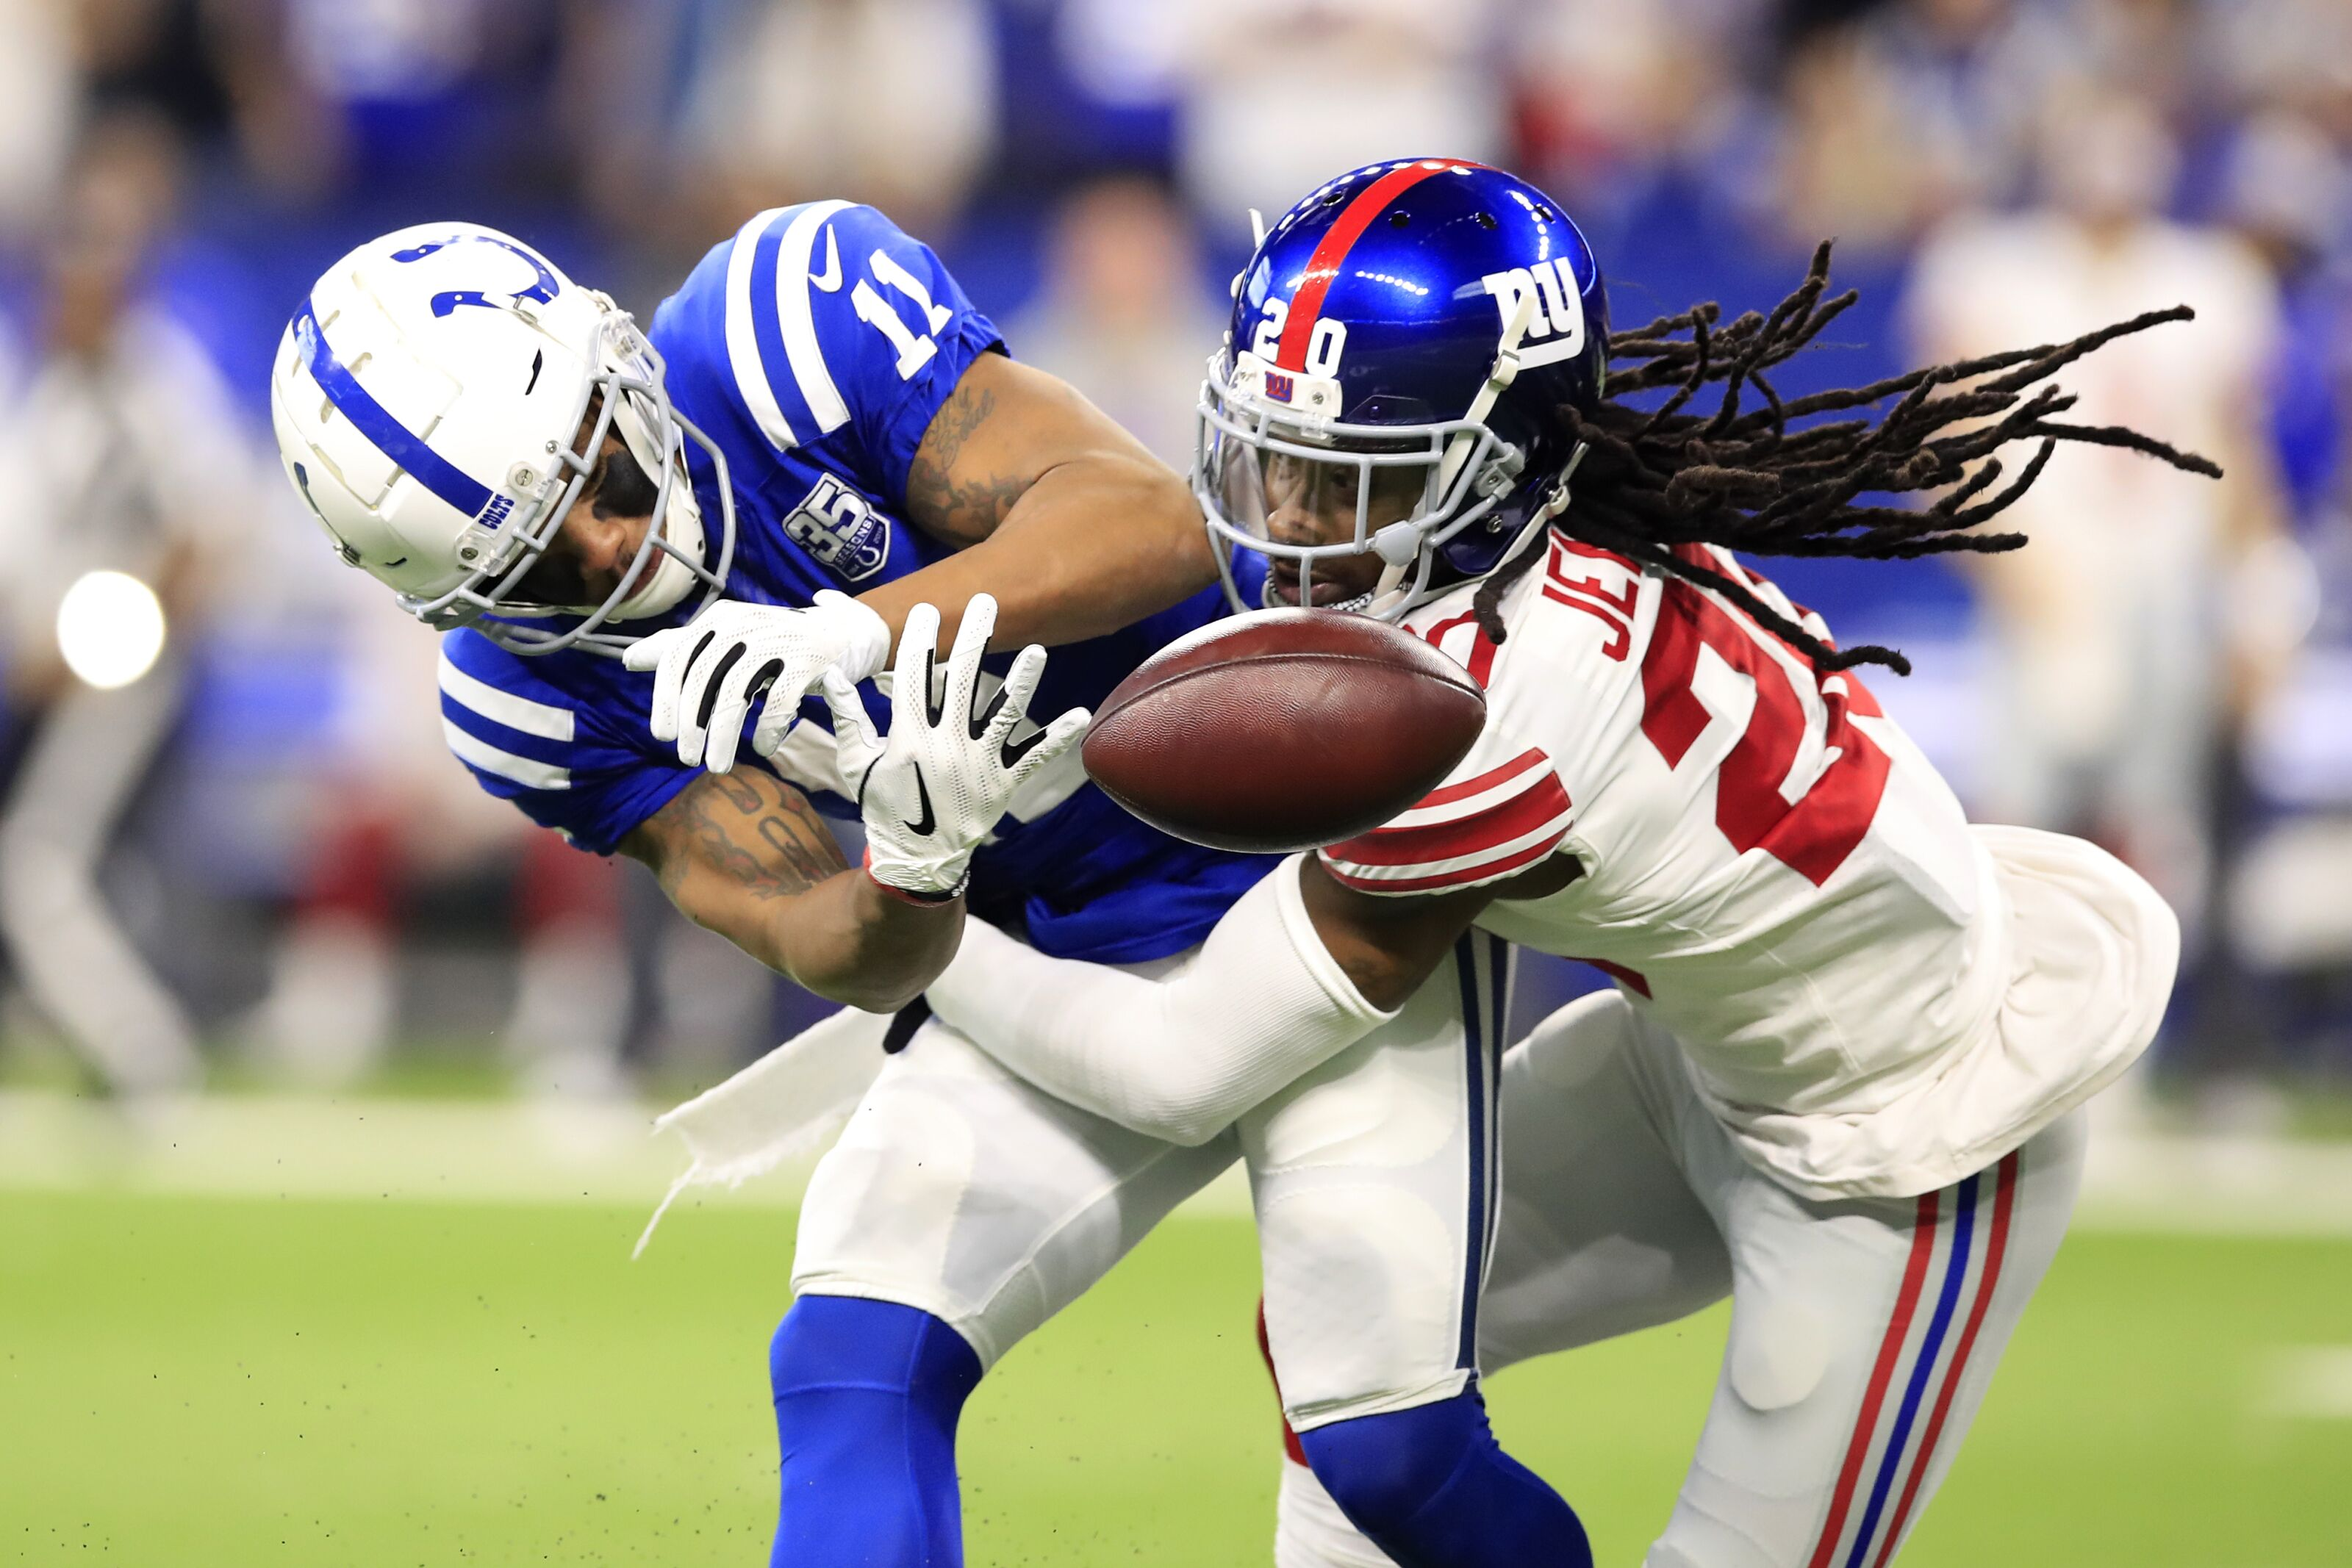 aa9f29f8 New York Giants: Top positional battles on the defensive side of the ...